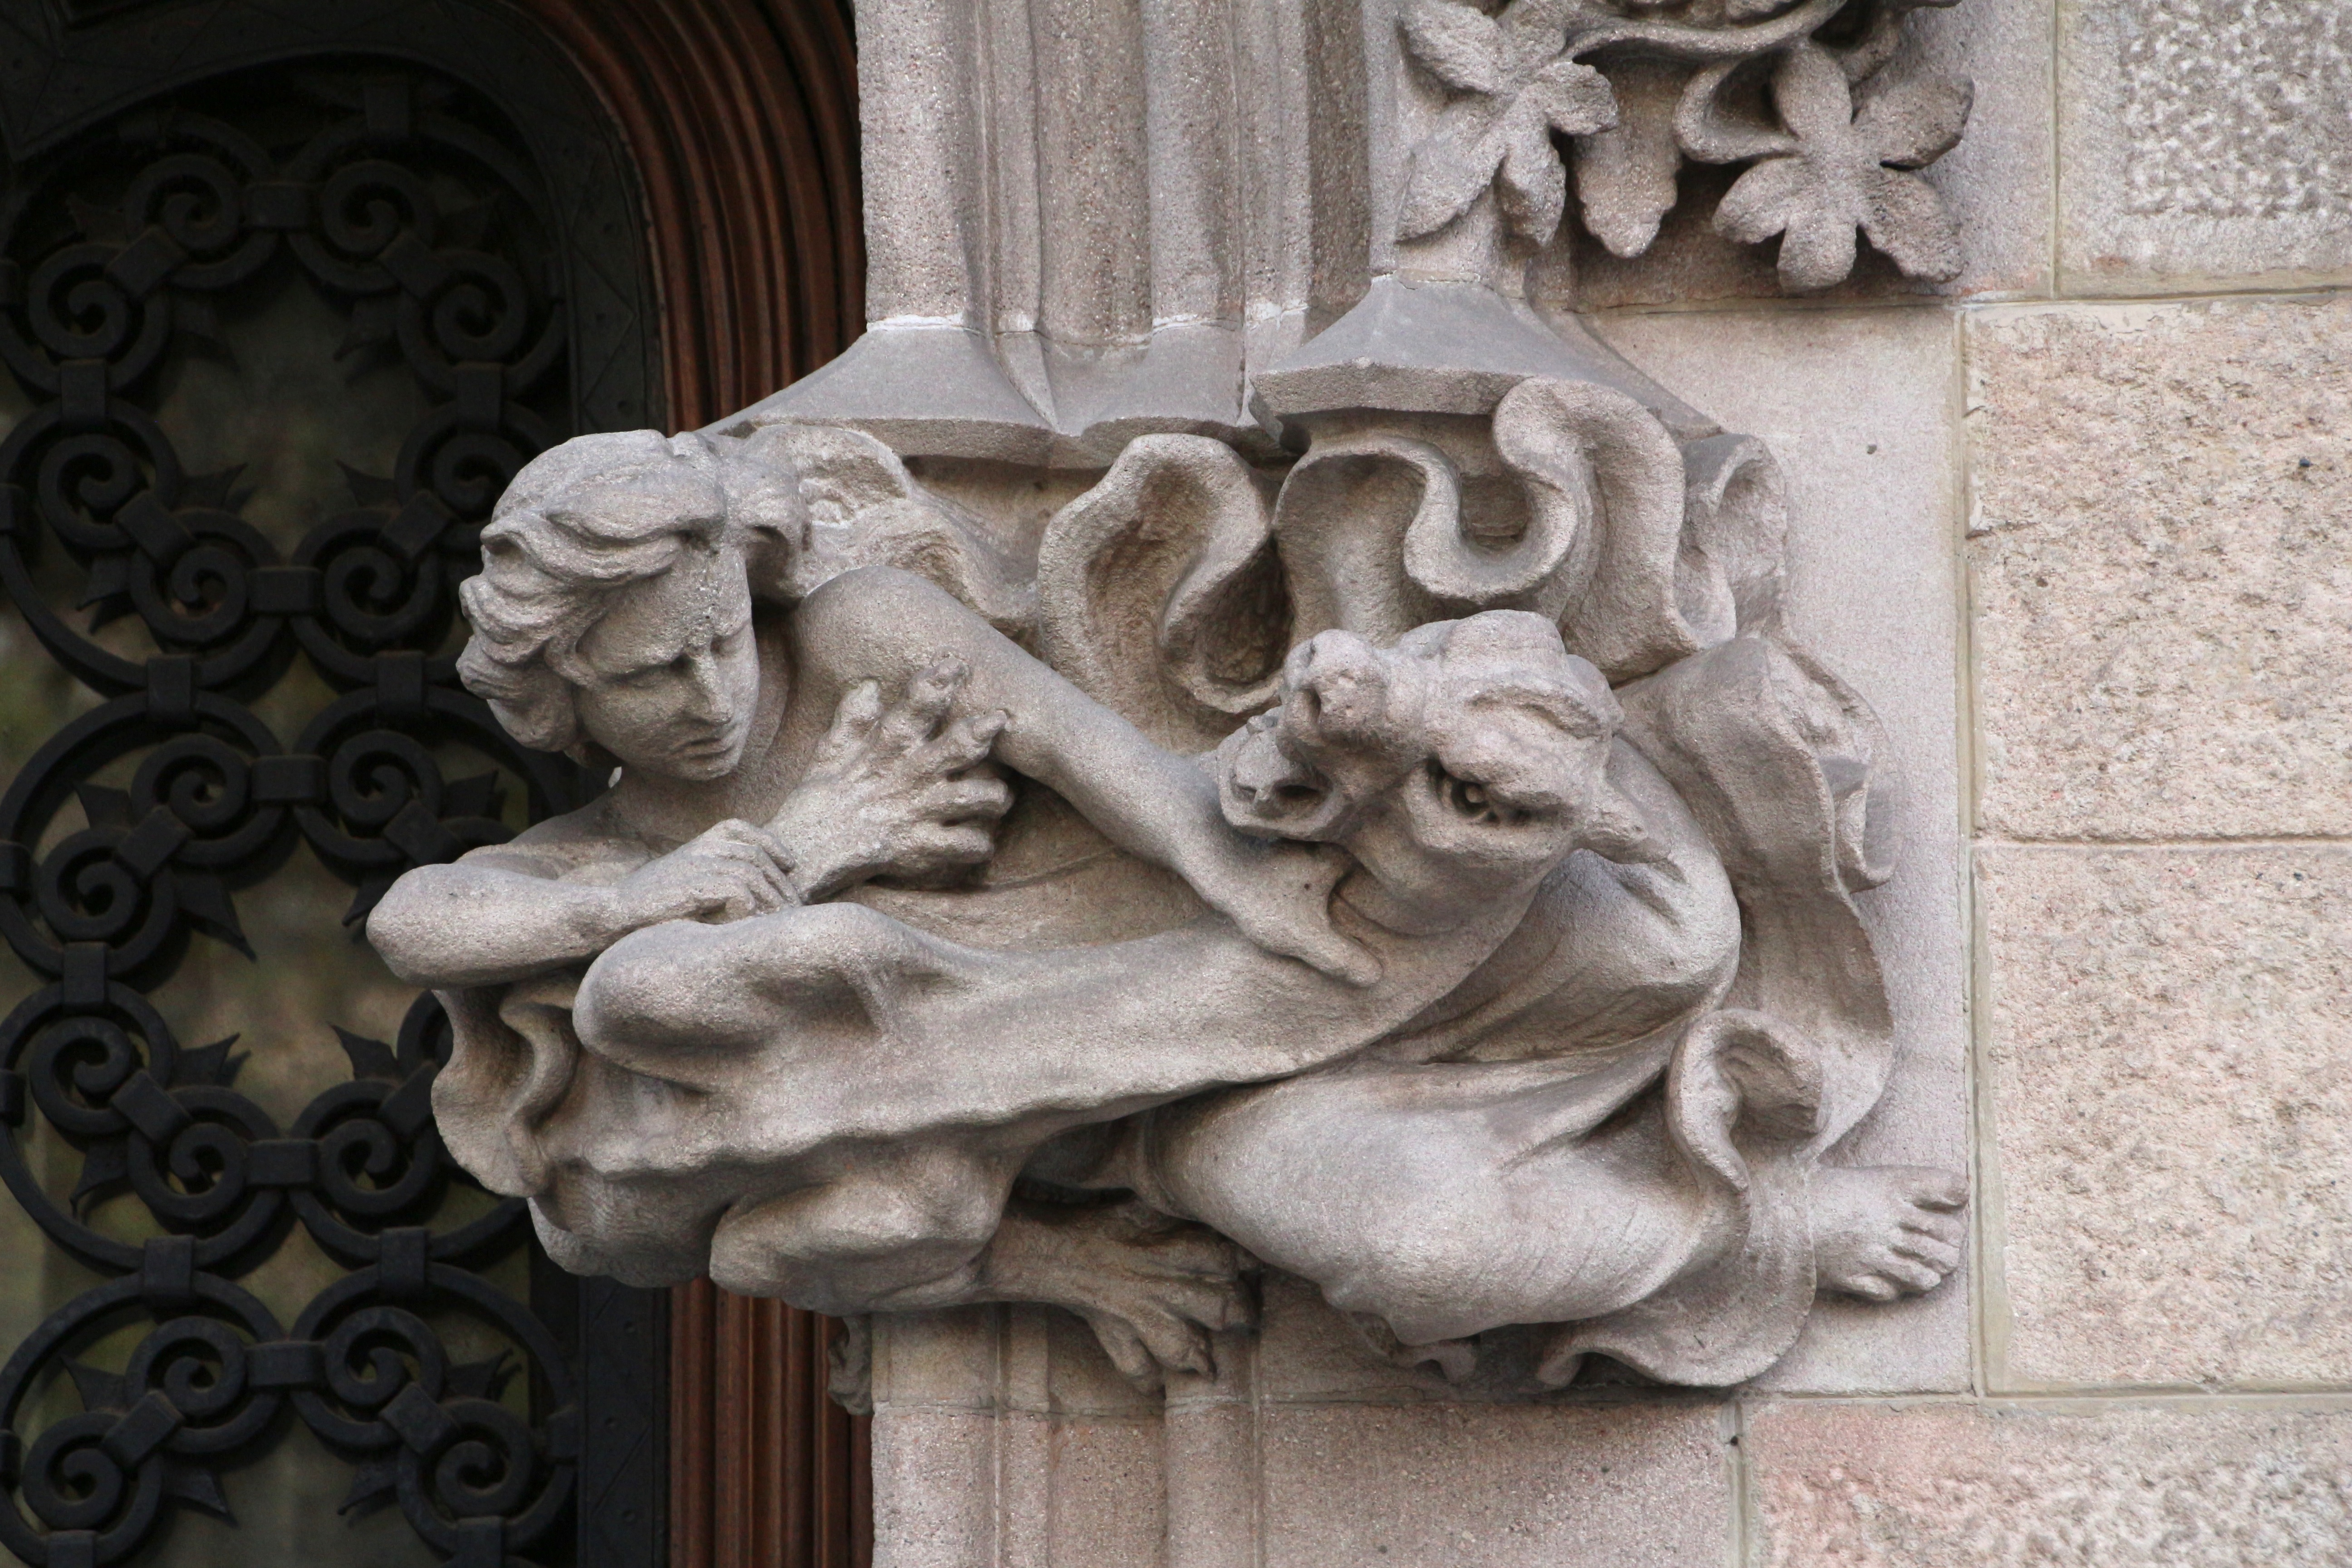 adornment author lucke charlie on a building in